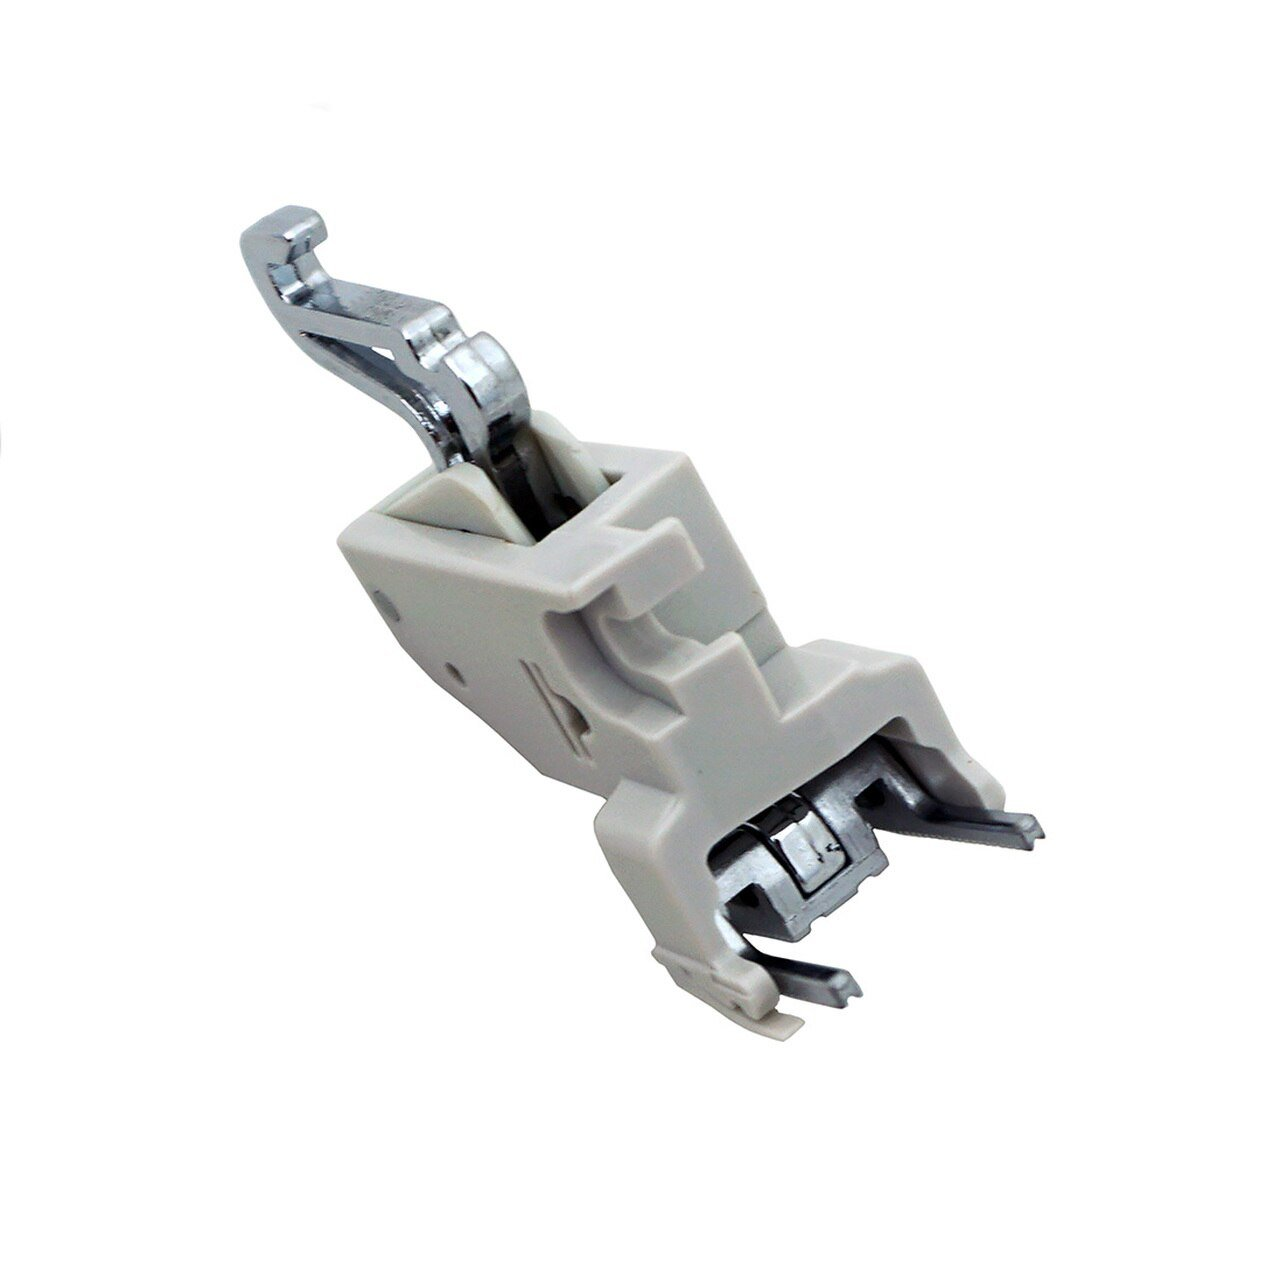 Janome AcuFeed Flex Dual Feed Foot Holder (twin) - 859817004